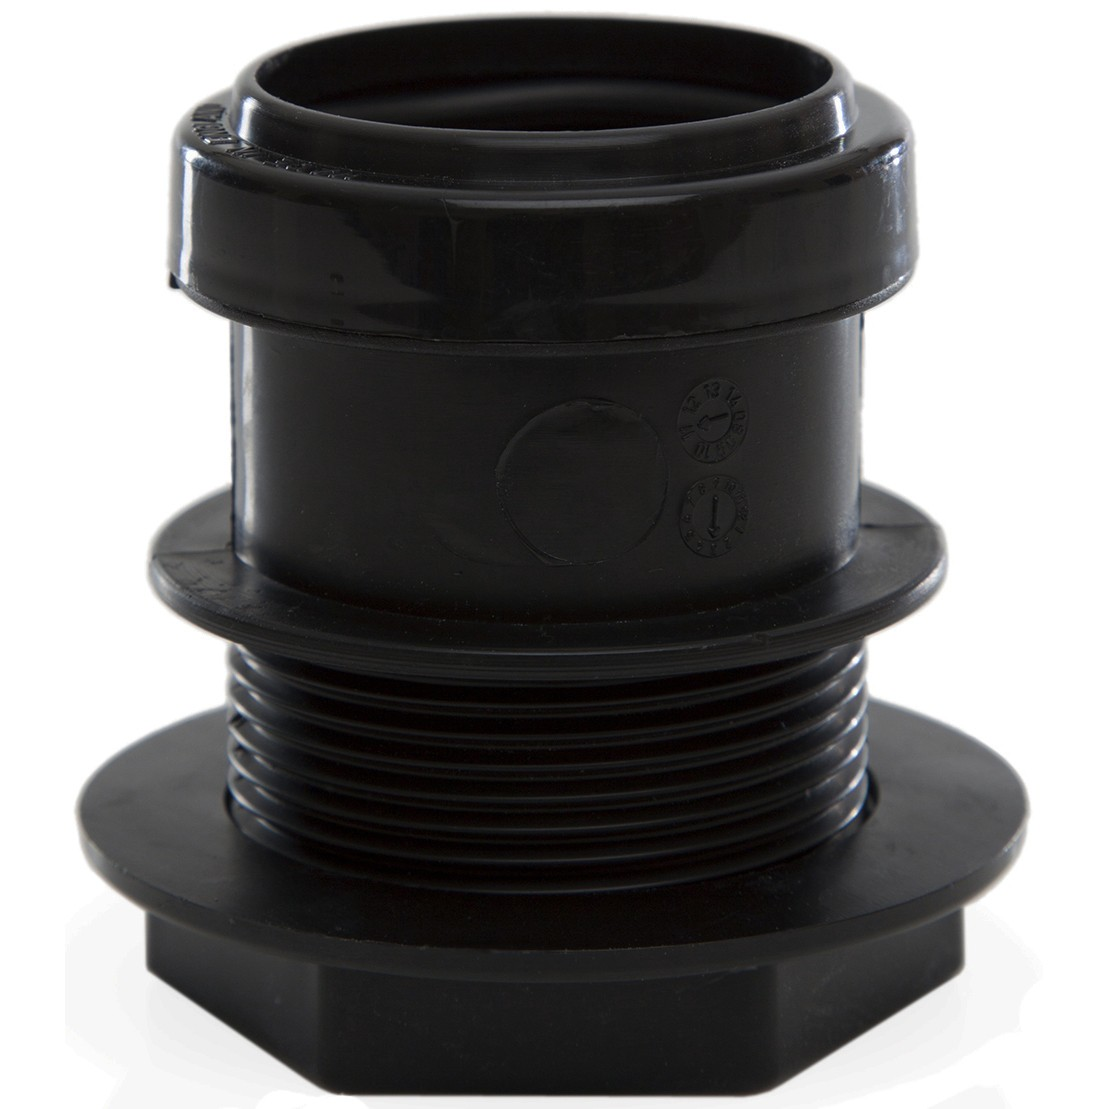 Polypipe 40mm Push Fit Waste Tank Connector - Black